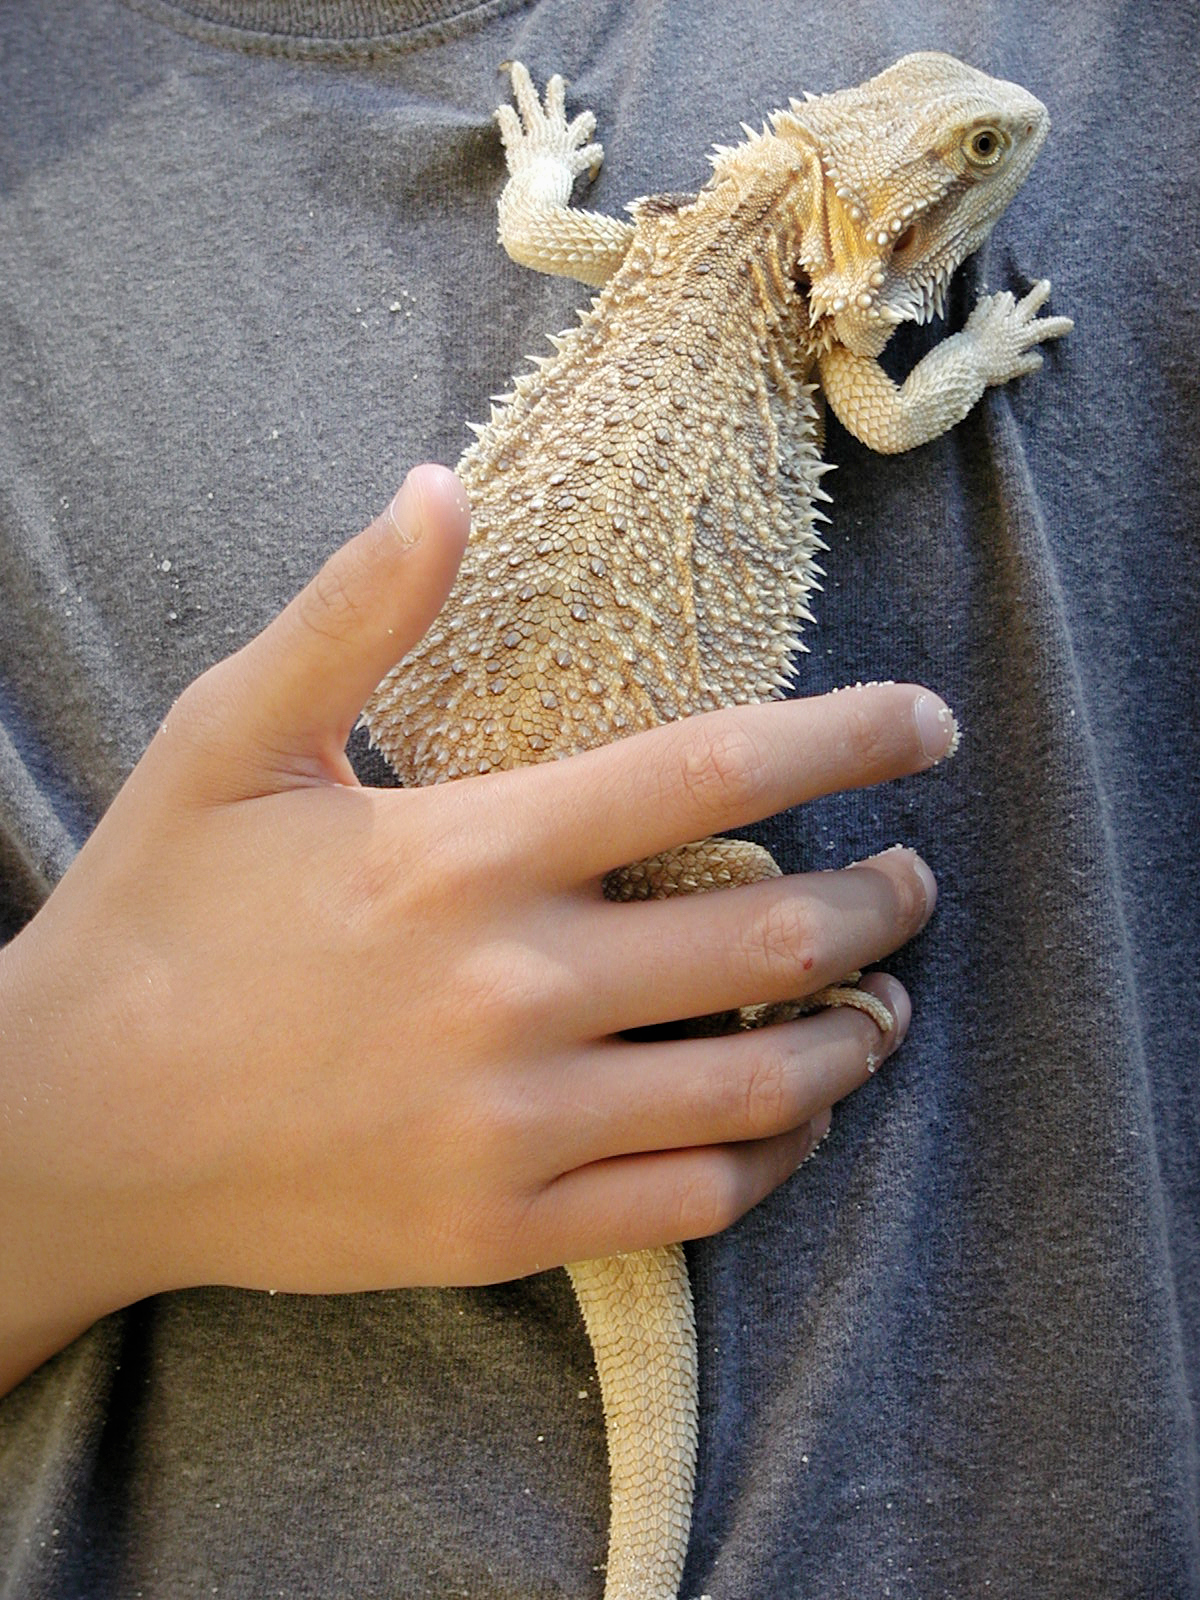 boy holding a bearded dragon